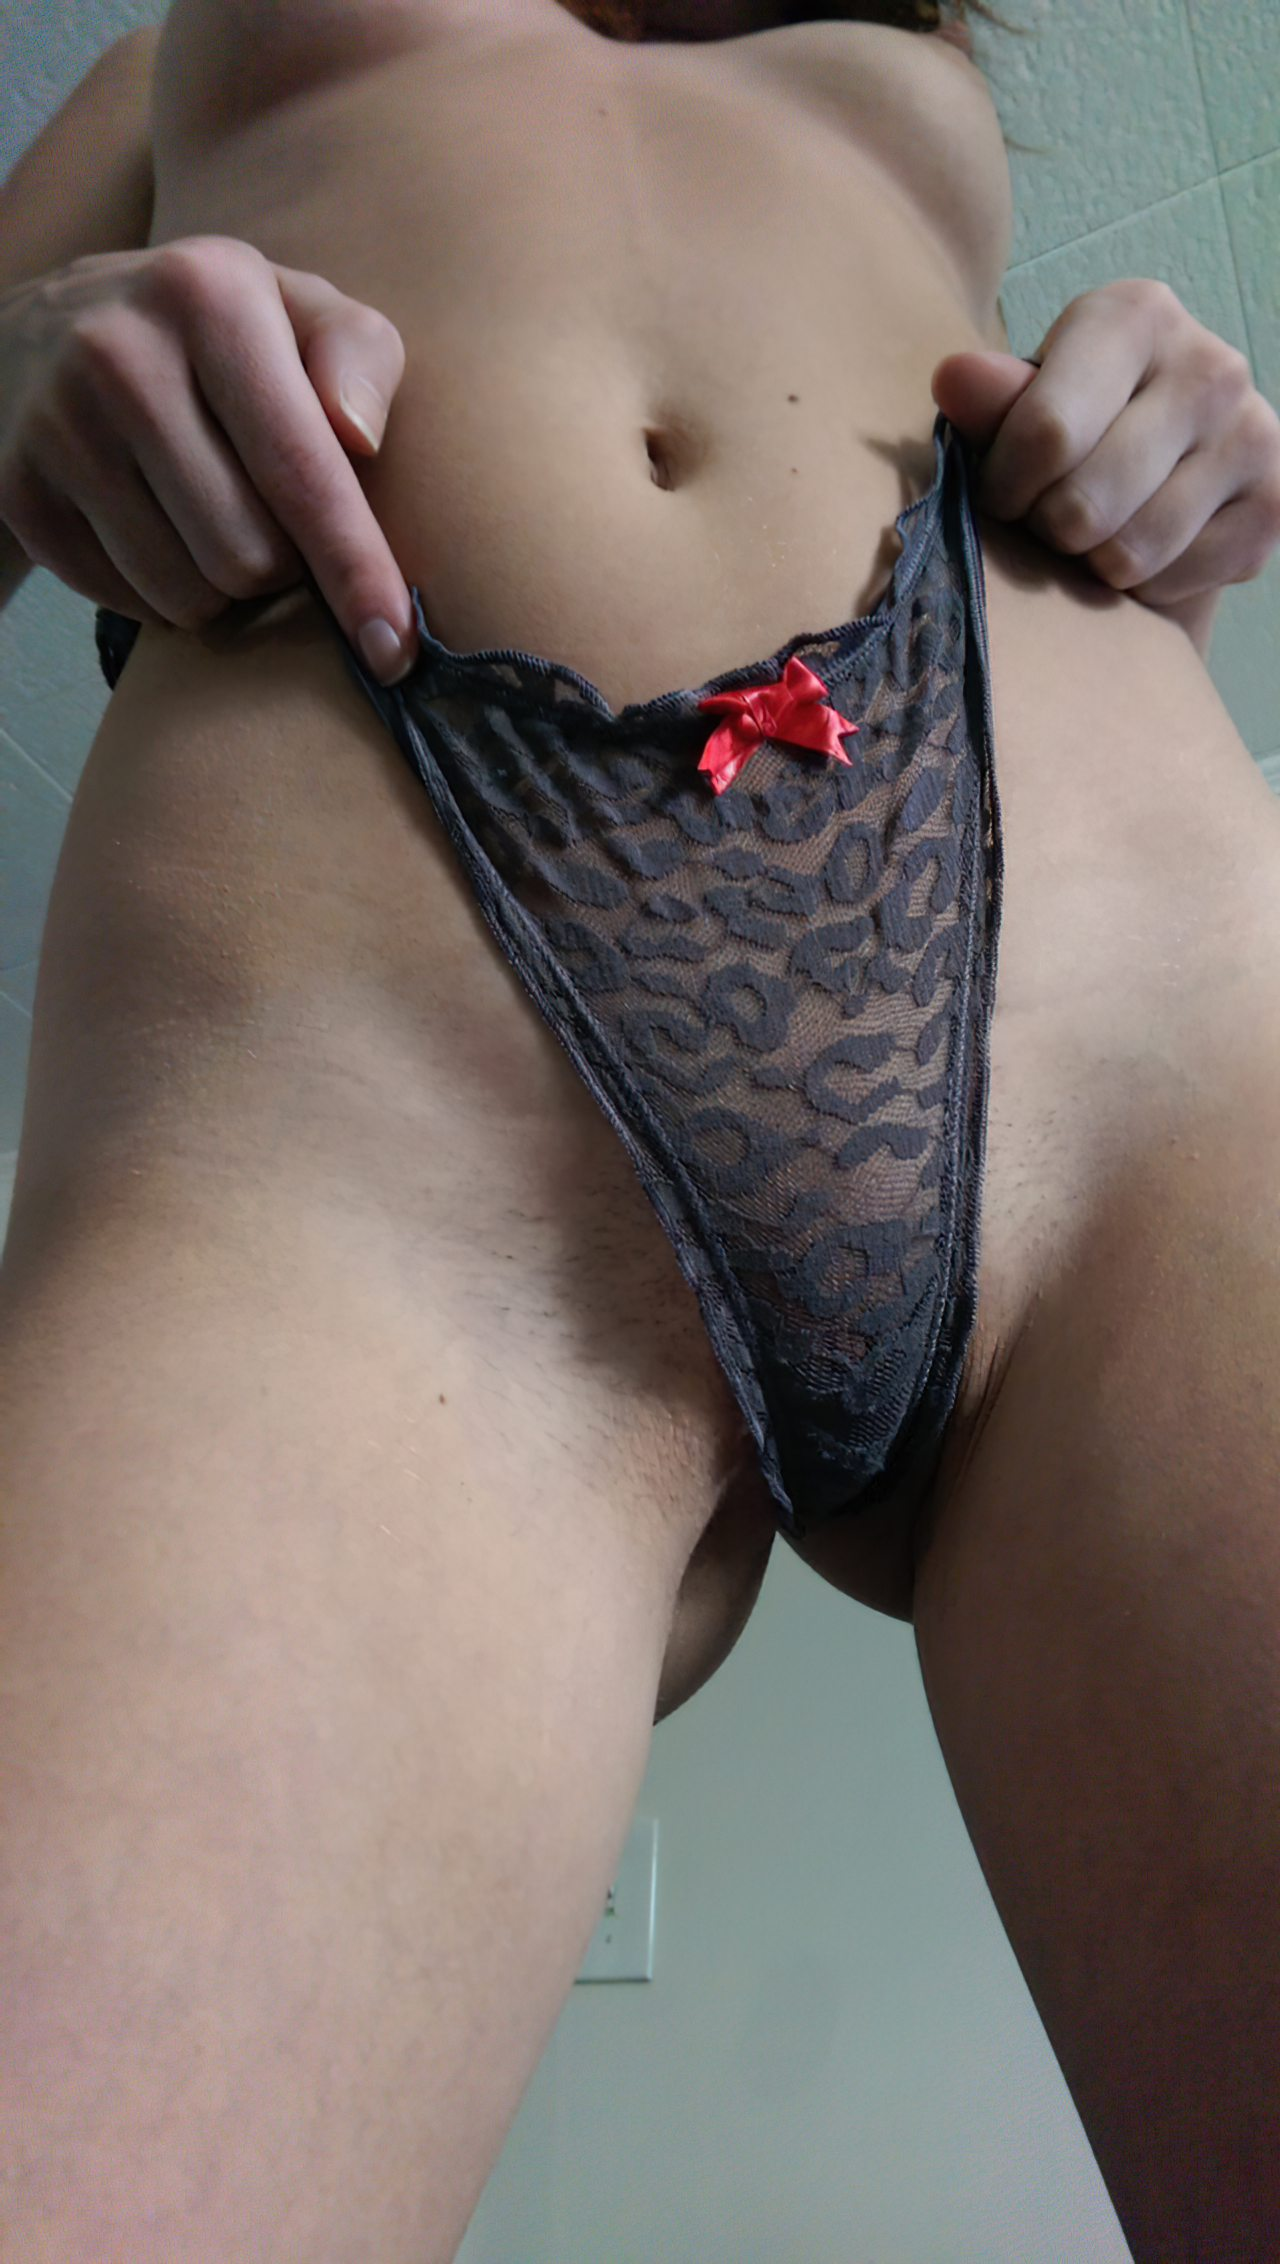 Peitos Excitados (6)